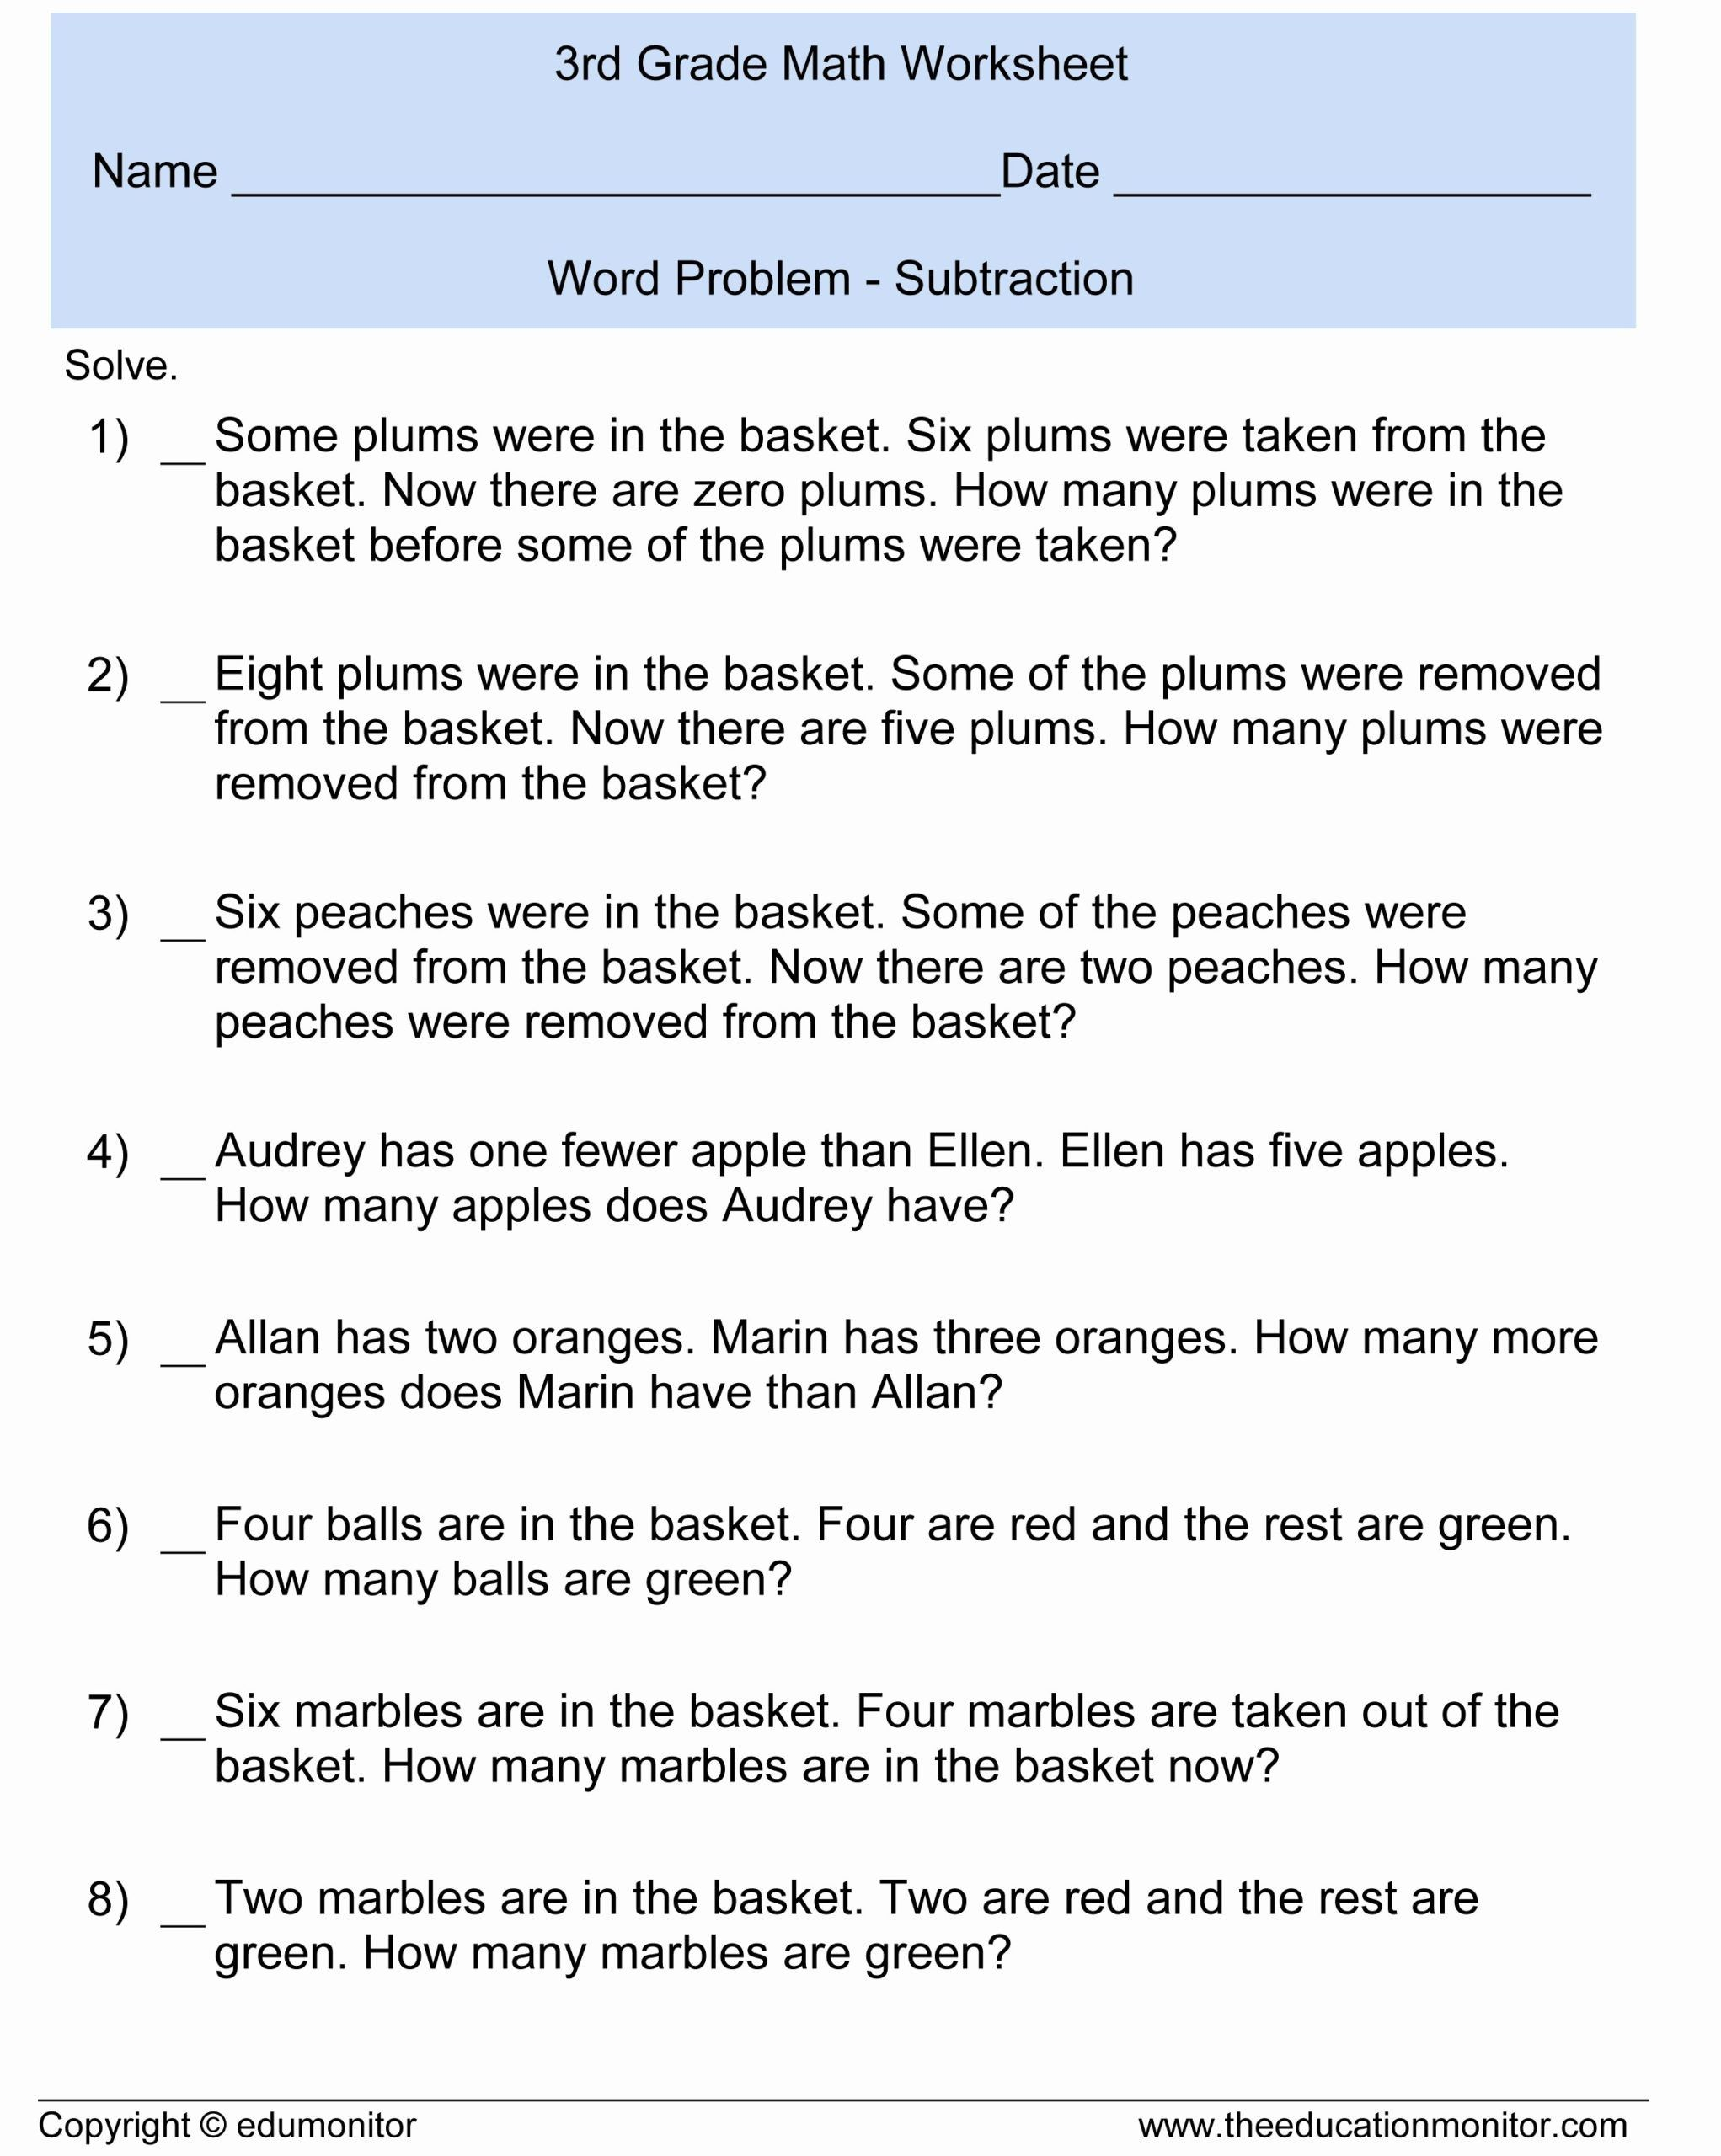 medium resolution of Matrix Word Problems Worksheets   Printable Worksheets and Activities for  Teachers